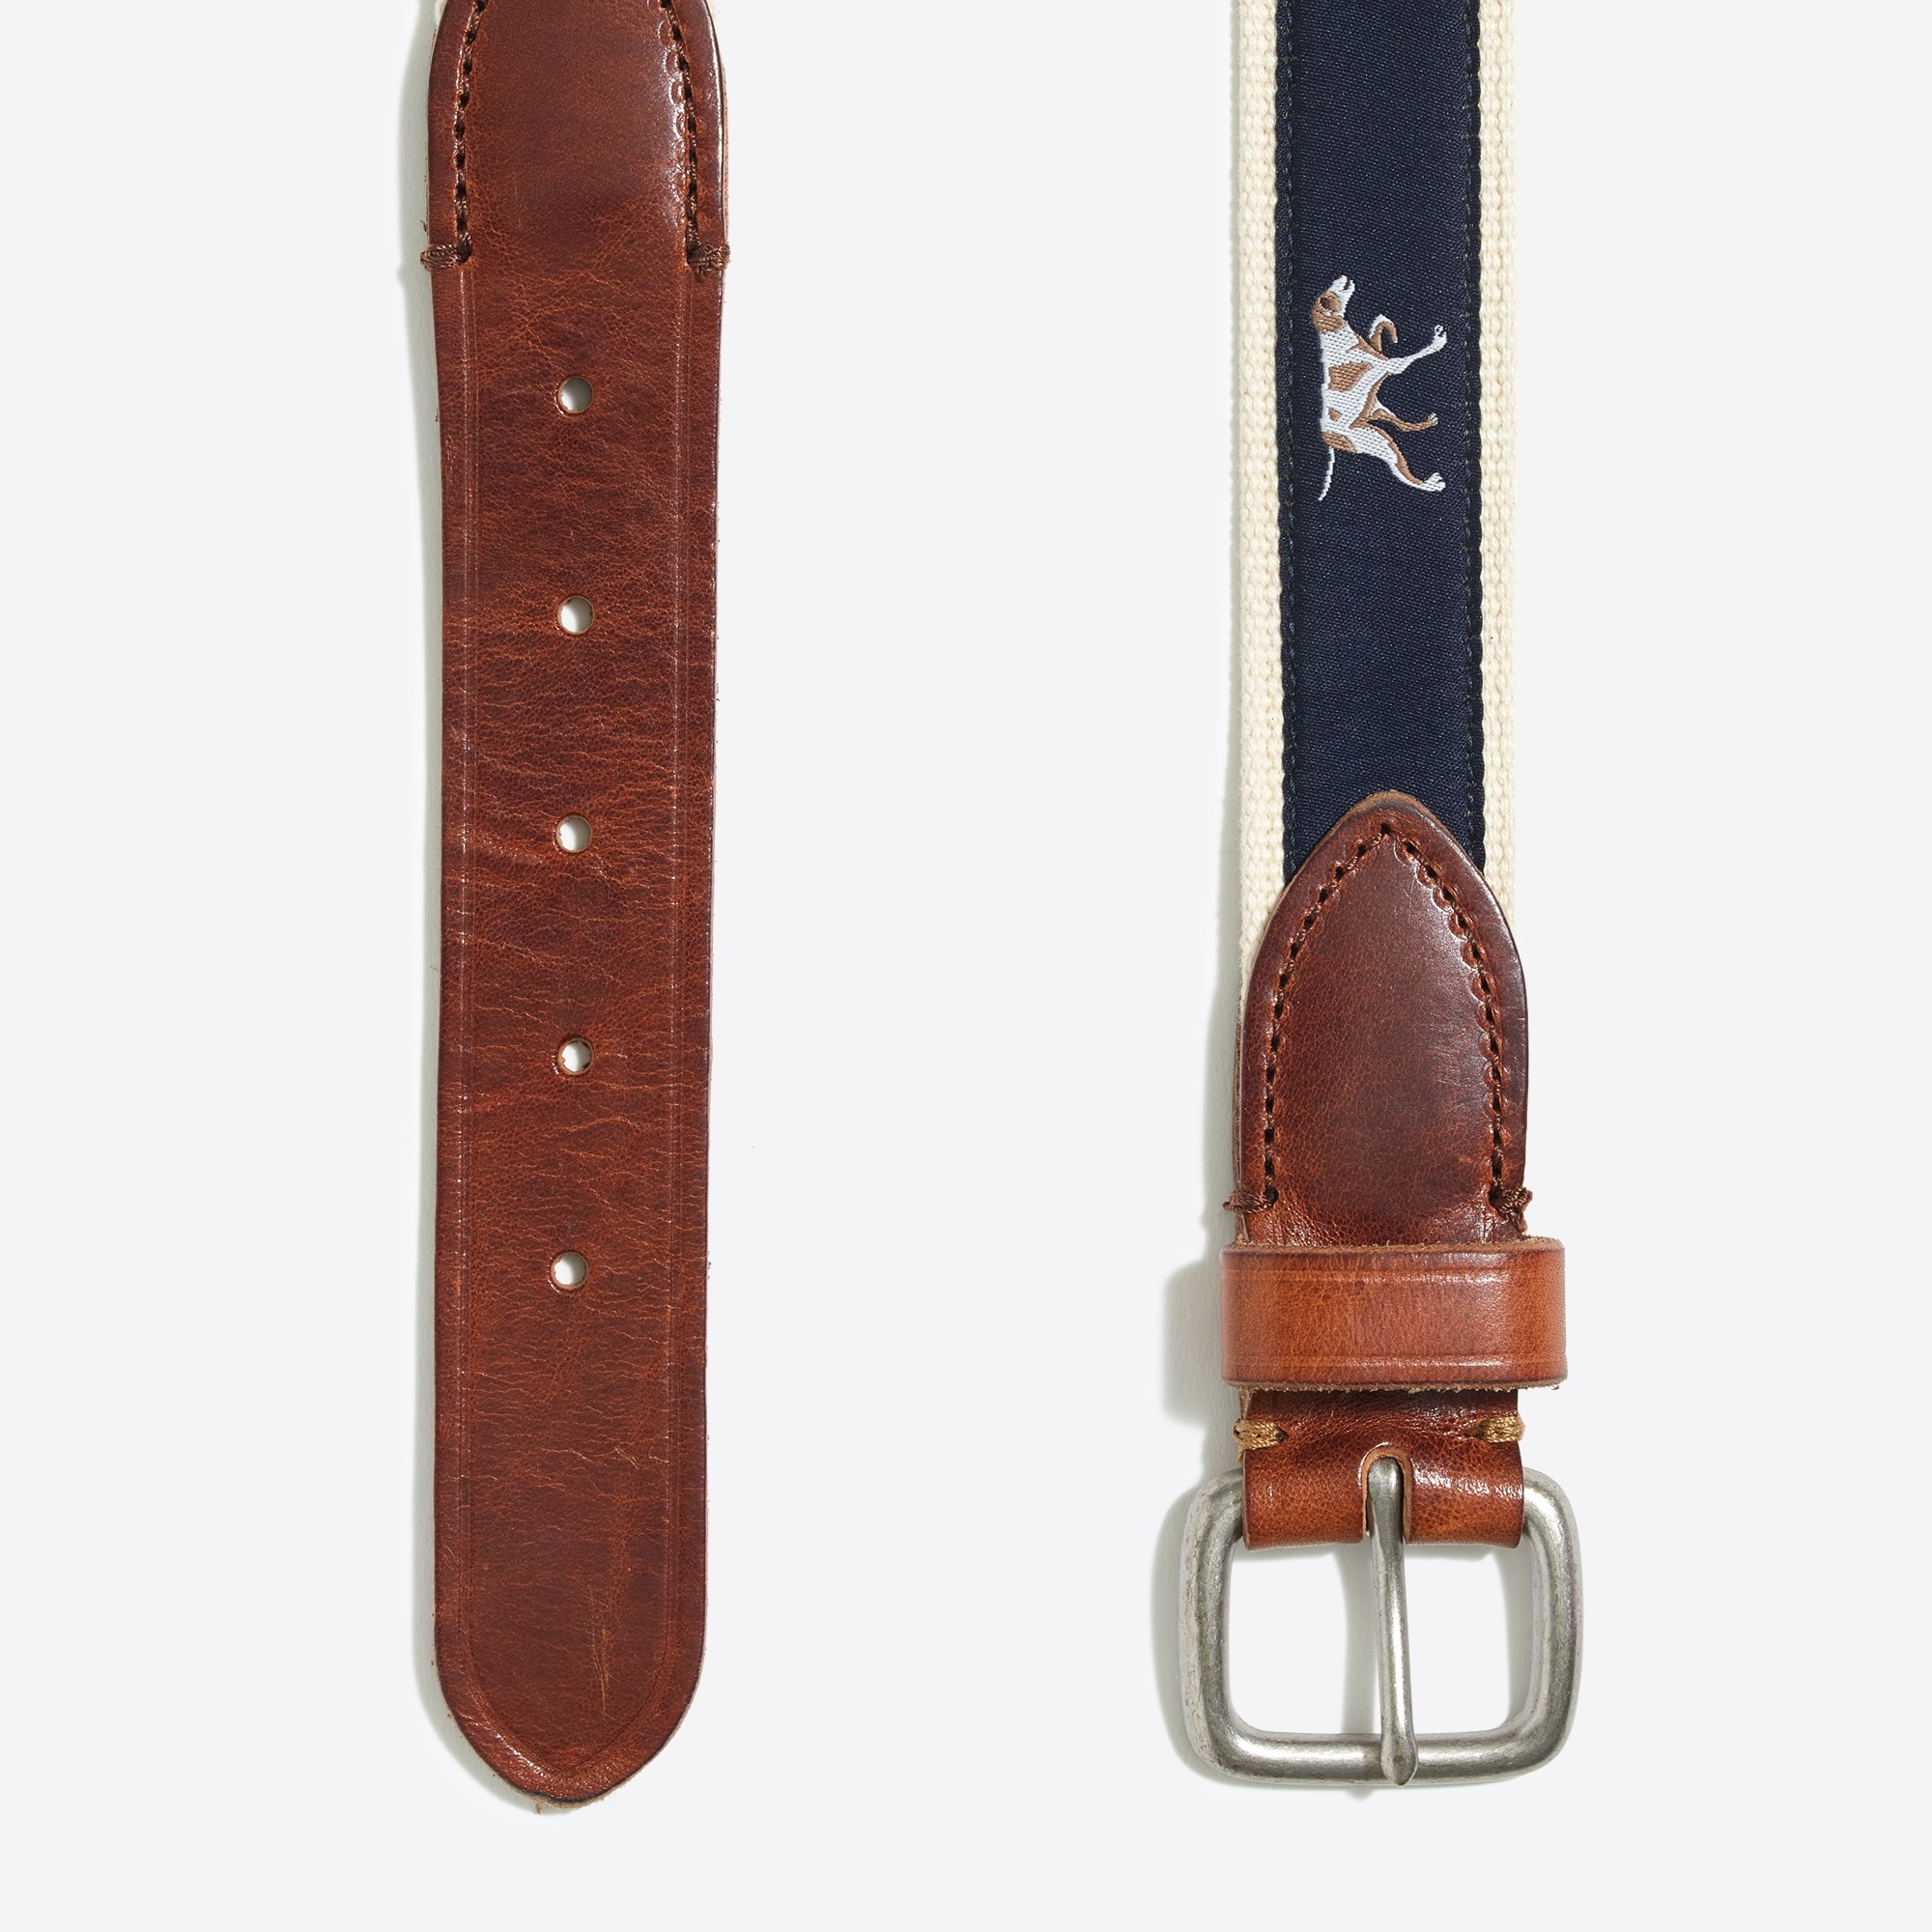 Image 2 for Embroidered patterned belt